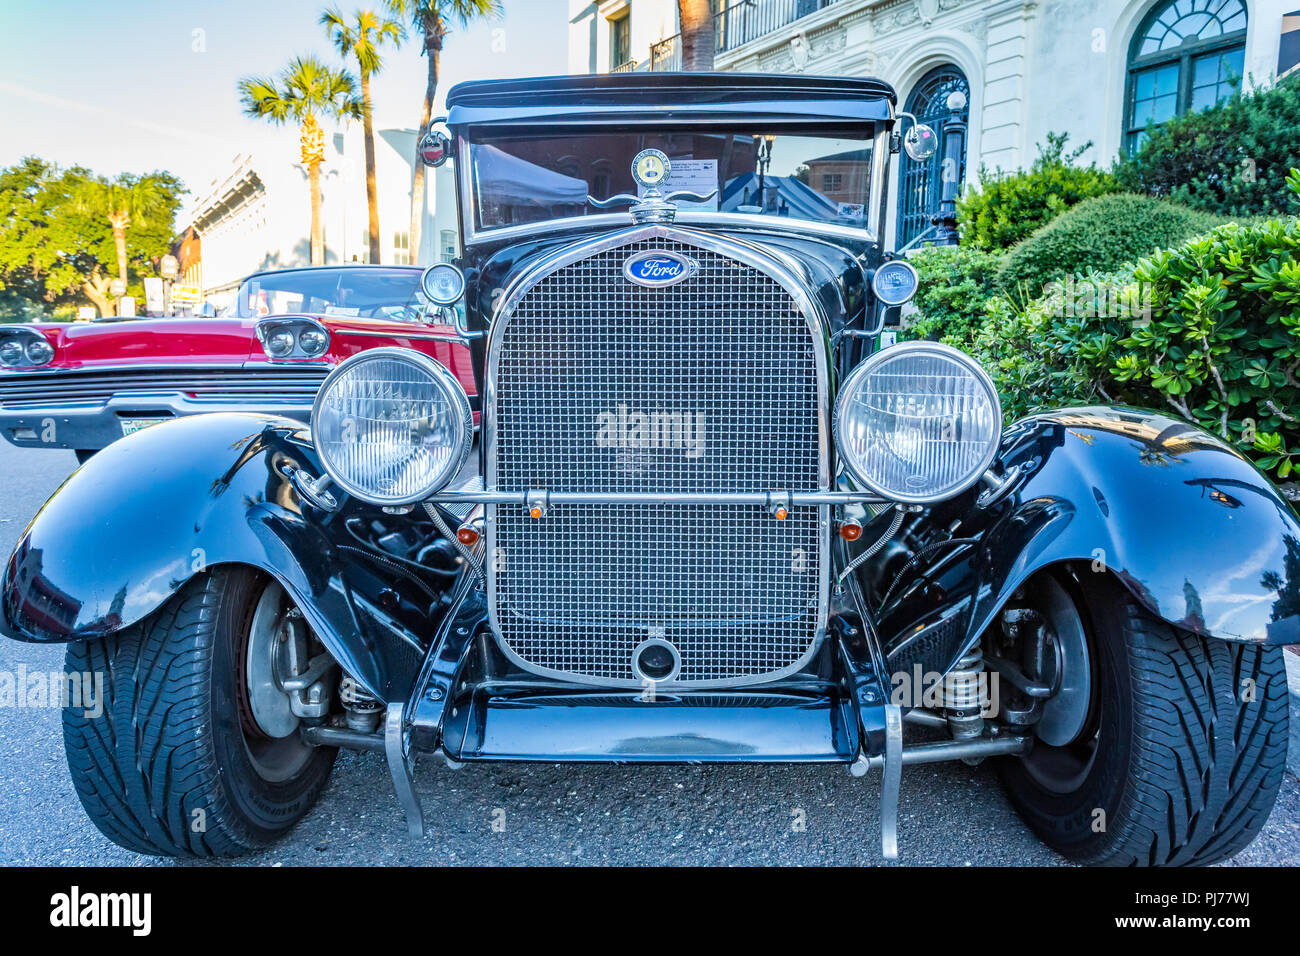 Customized Ford Model A At A Classic Car Show In Amelia Island - Amelia car show